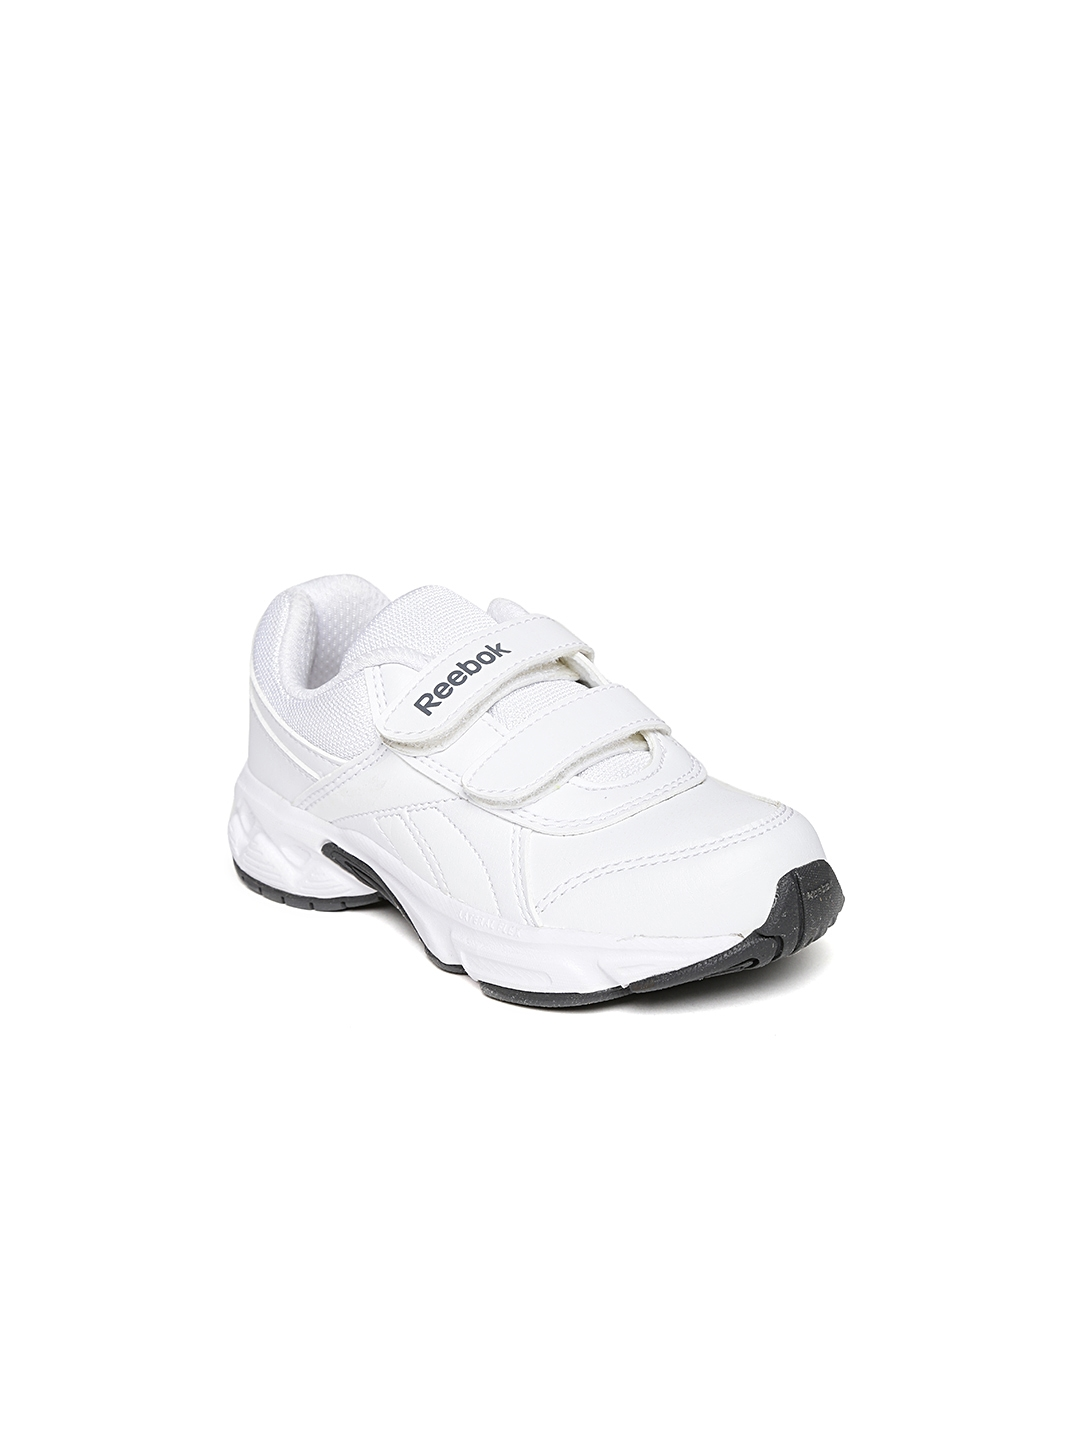 662a44932 Buy Reebok Kids White School LP Running Shoes - Sports Shoes for ...